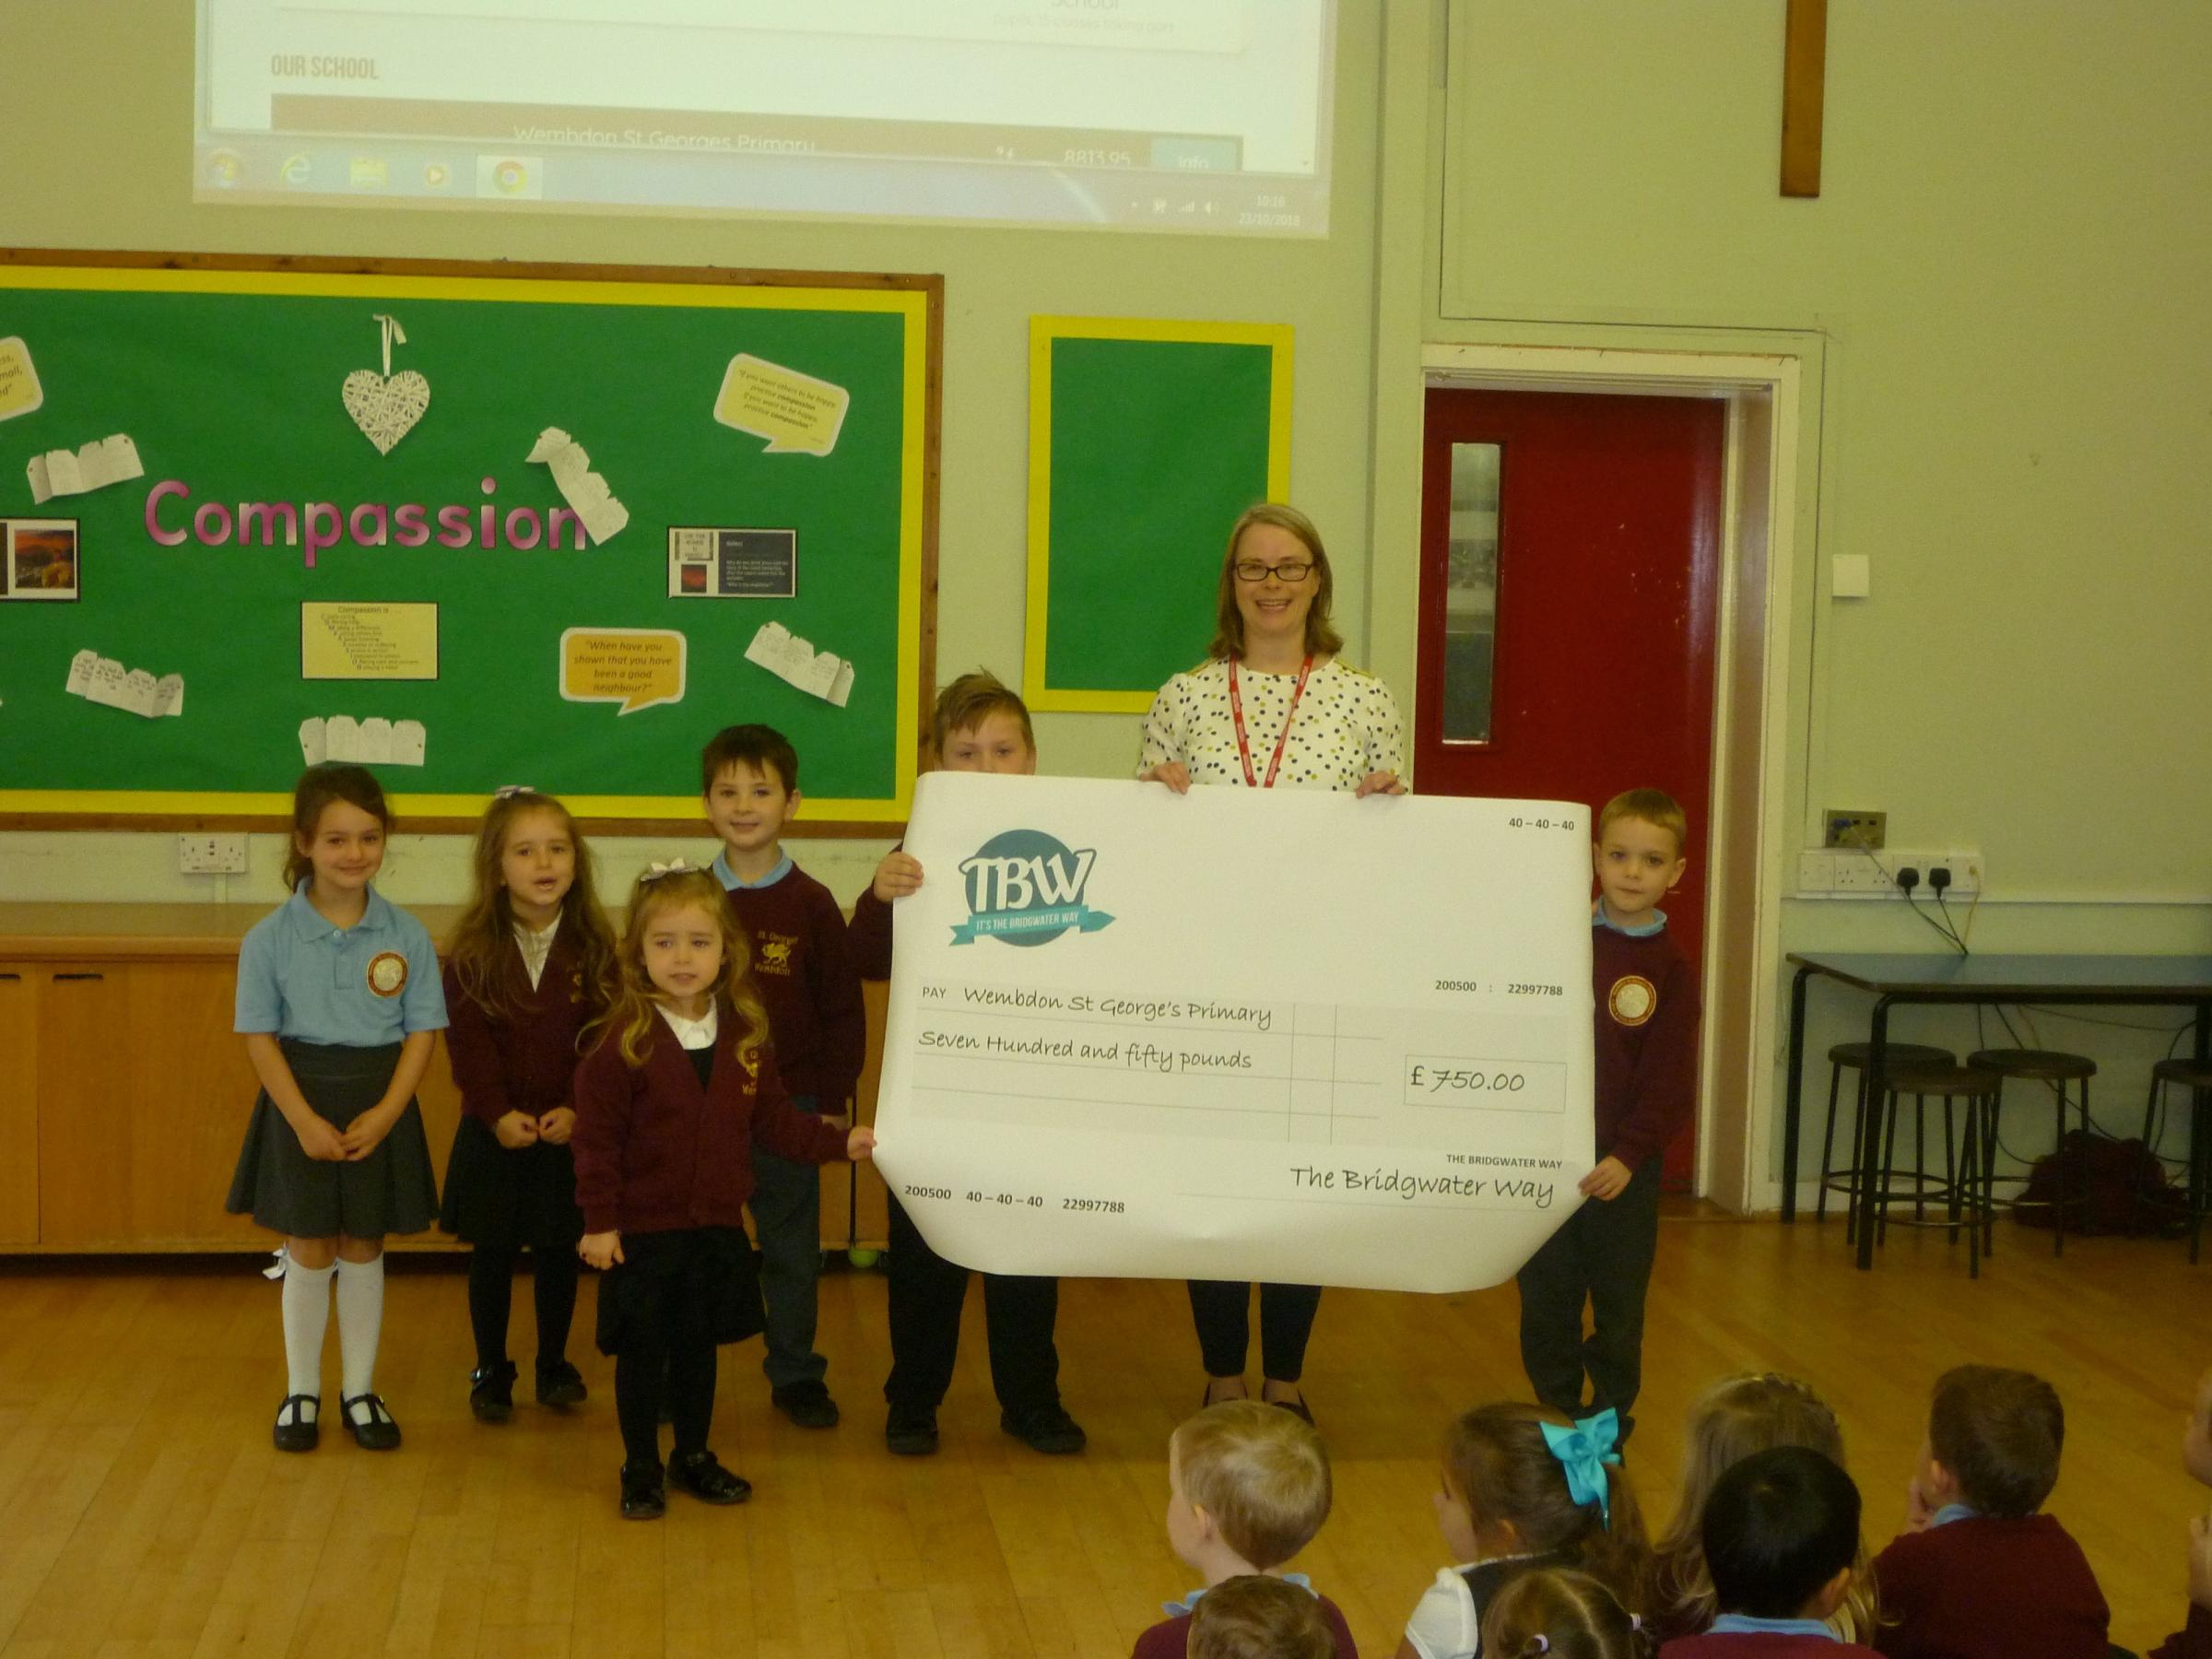 DELIGHTED: Wembdon St George's Church School won a Bridgwater Way challenge encouraging a reduction in car use to travel to school